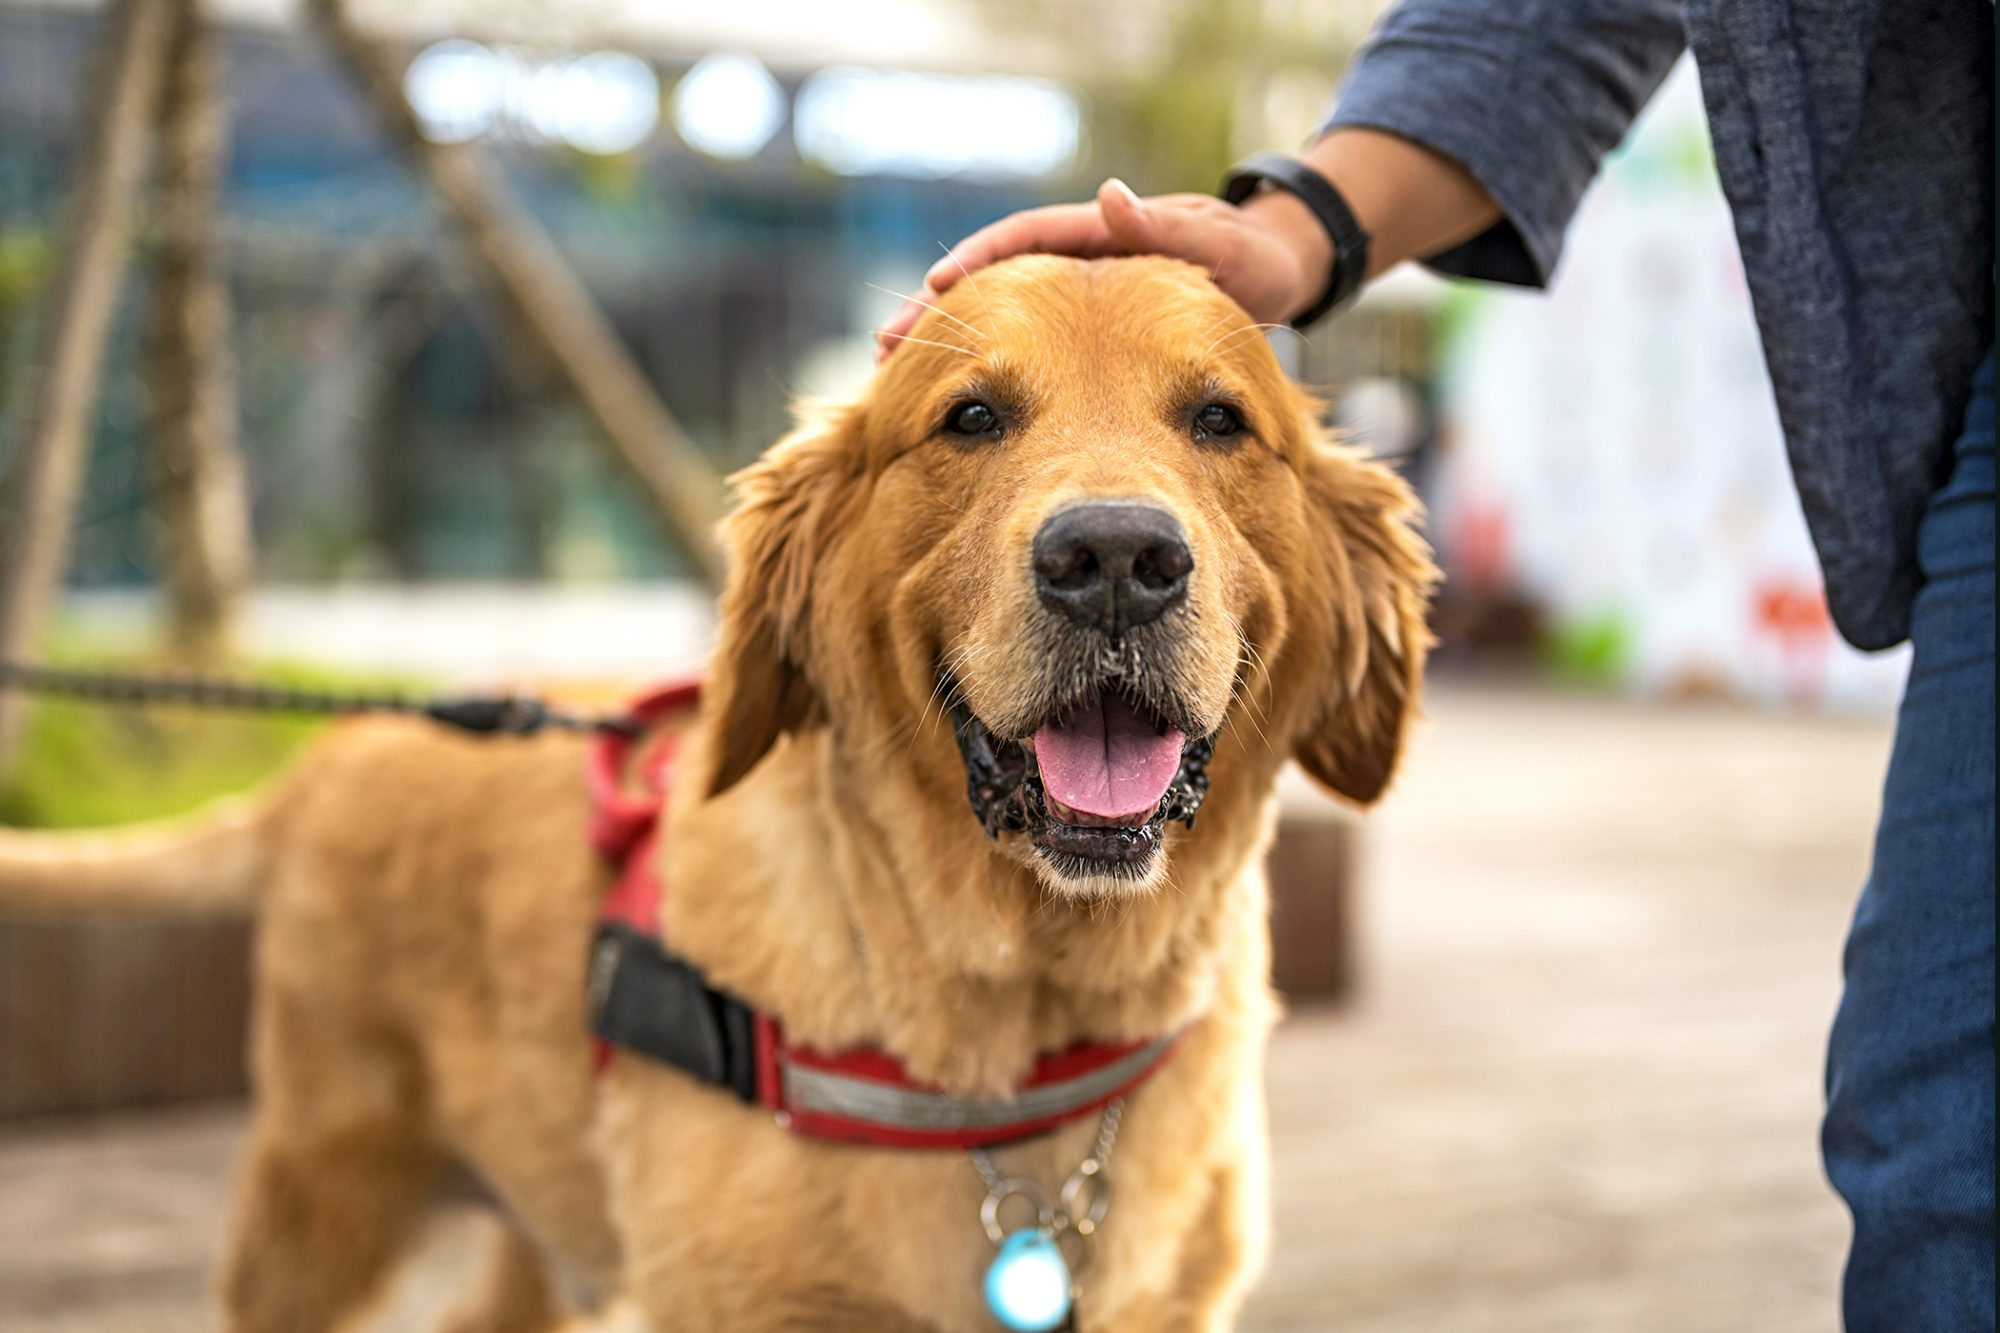 owner petting their golden retriever on the head